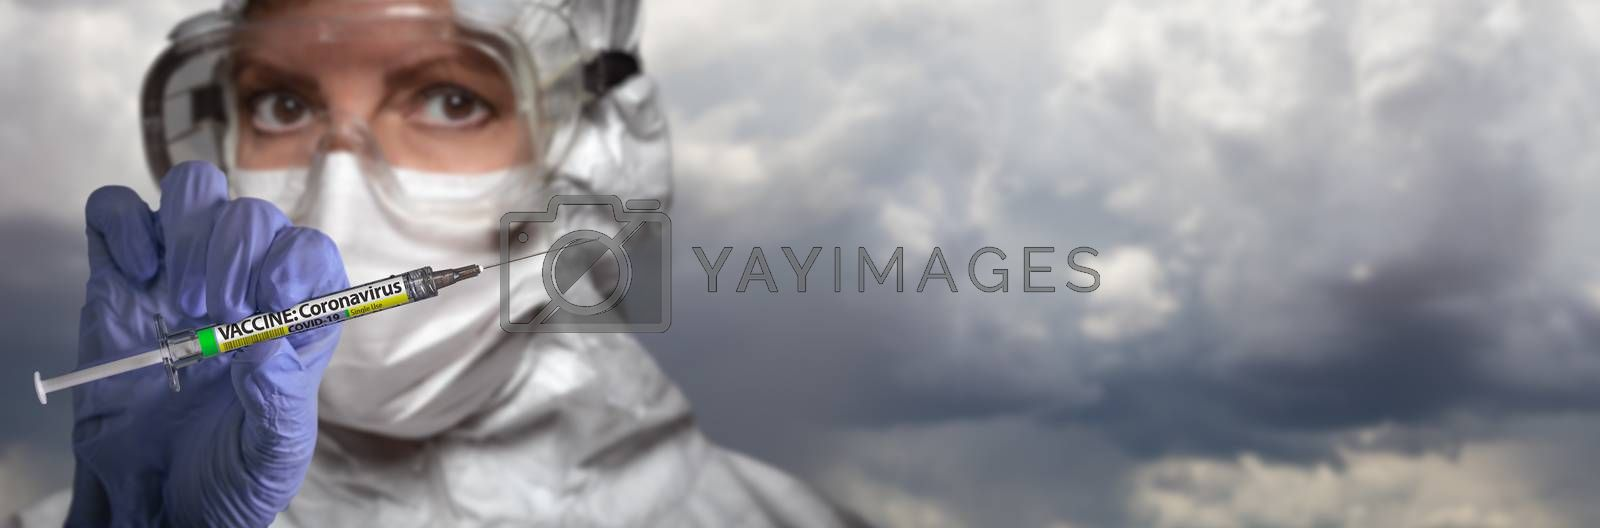 Doctor or Nurse Wearing Surgical Glove Holding Medical Syringe with Coronavirus COVID-19 Vaccine Label Banner of Clouds.